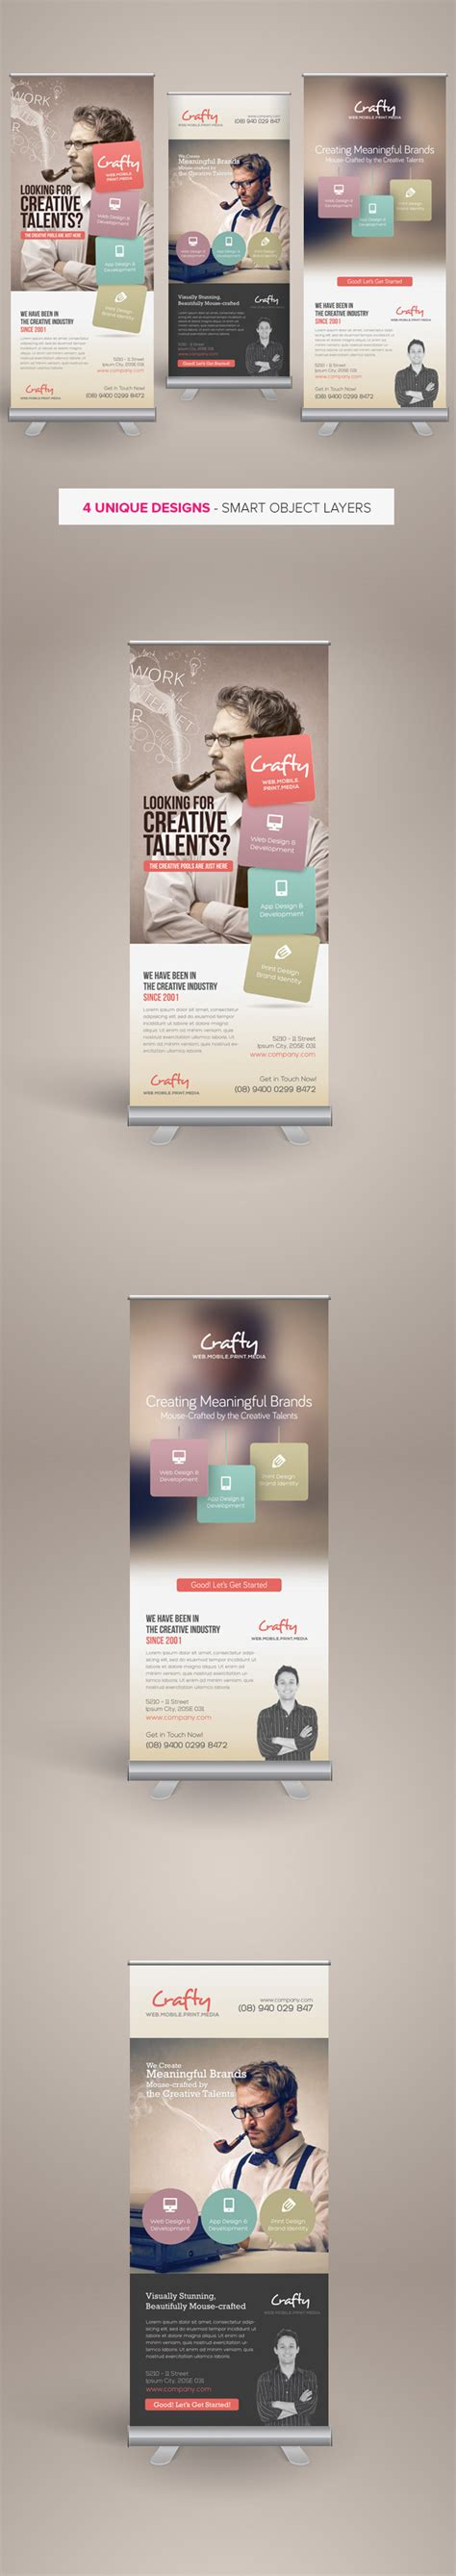 banner design on behance creative design agency roll up banners on behance